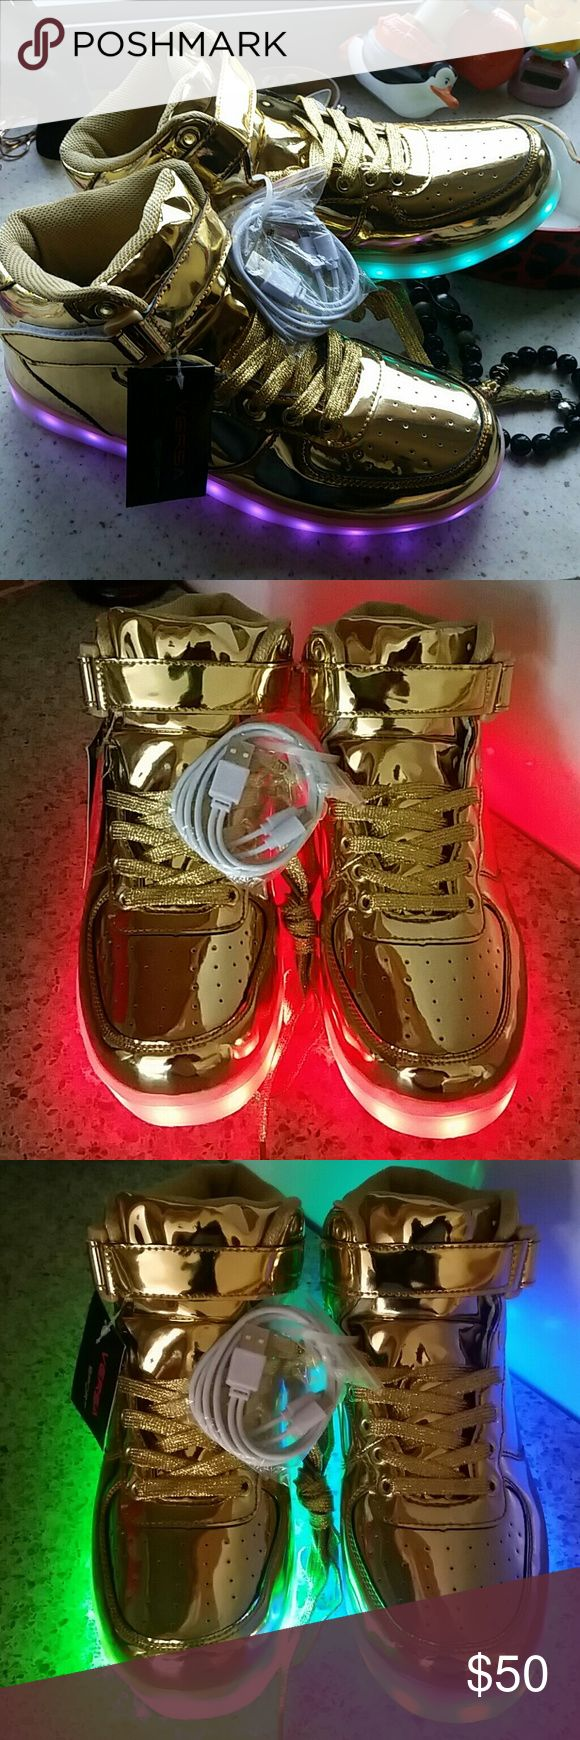 Versa Sport gold high top LED sneakers, Unisex Brand new LED light gold high tops. Comes with USB charger with two cords. Press button in charger port to switch colors, also does flashing lights. Shiny gold high top features cushioned ankle, gold laces, and velcro strap closure.  *Unisex, can fit size 8 guy or size 10 woman* versa sport Shoes Sneakers